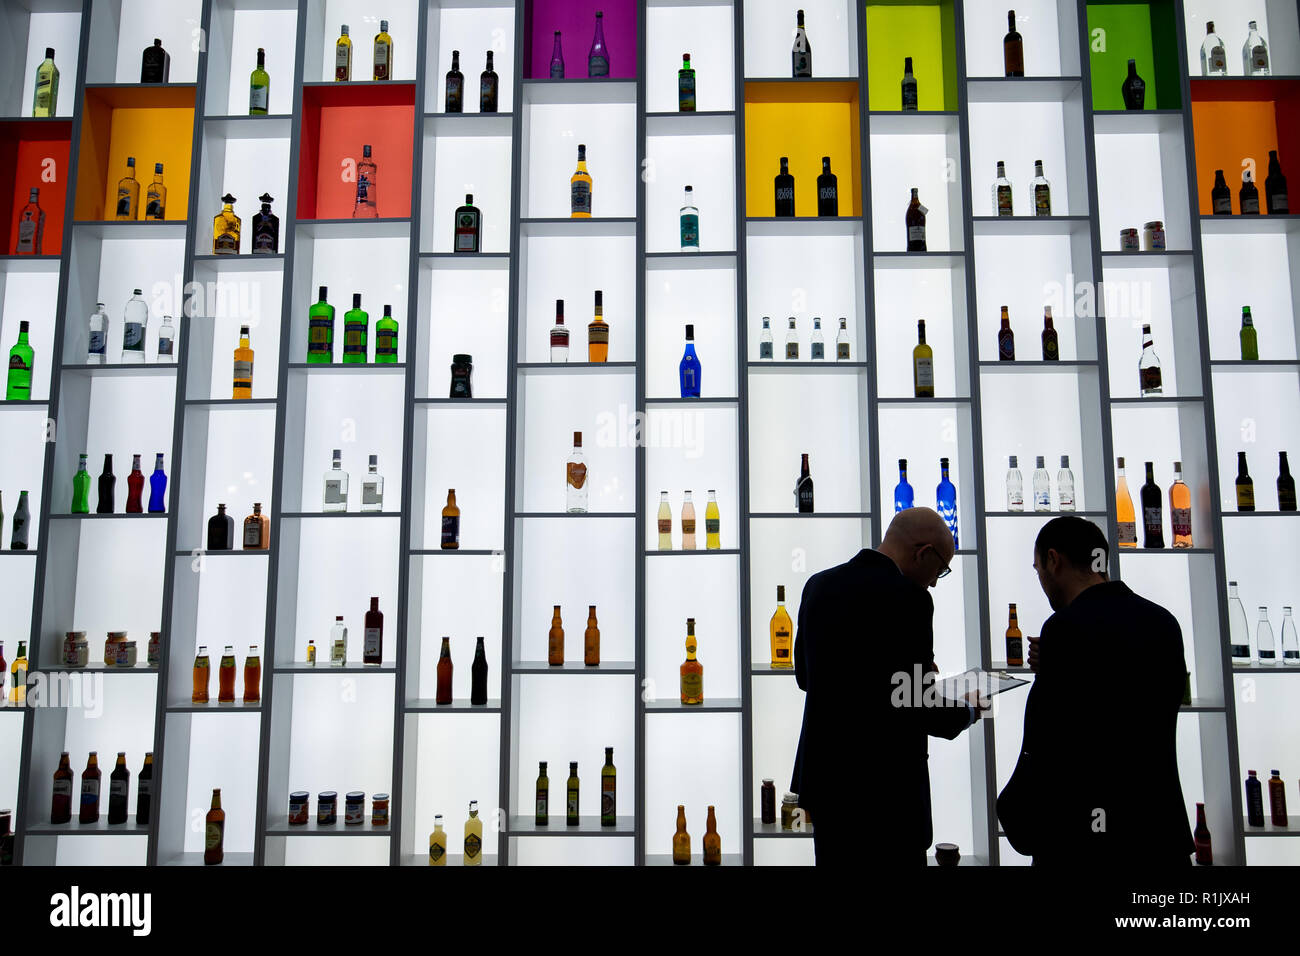 Nuremberg, Germany. 13th November, 2018. Numerous bottles will be on display on a shelf with background lighting at the stand of the US manufacturer of glass containers OI (Owens-Illinois) at the BrauBeviale beverage trade fair. Photo: Daniel Karmann/dpa Credit: dpa picture alliance/Alamy Live News - Stock Image